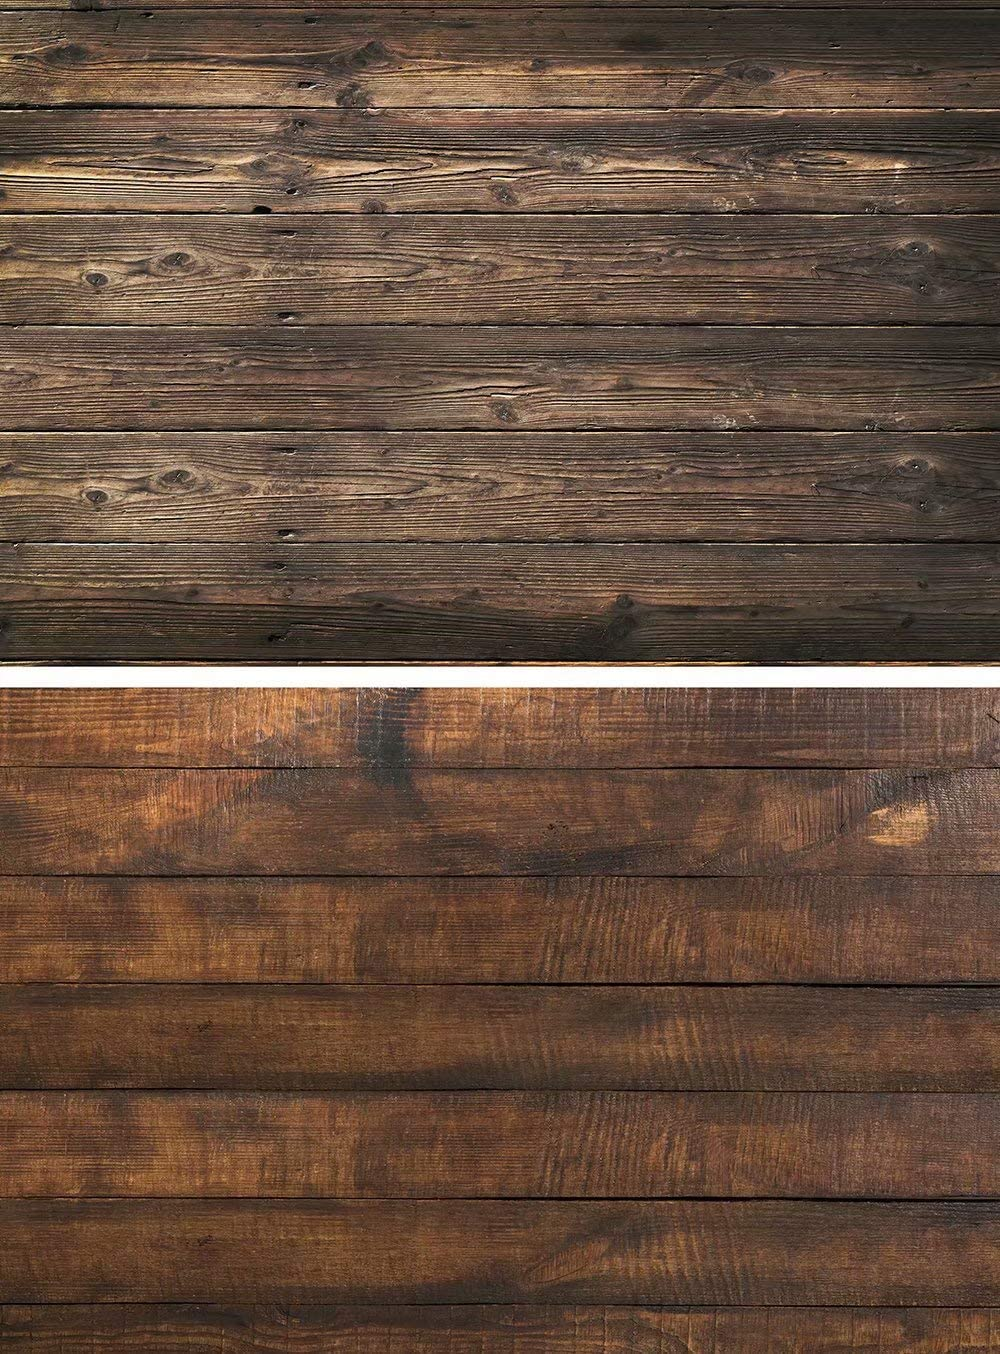 2 Patterns Photographic Background Vintage Wood Texture Grainy Board Background Food Photography Blogger Cosmetic Photo Camera Flat Lay Backdrop Shabby Chic Wood Double Video photoshoots 32.6x21.6''